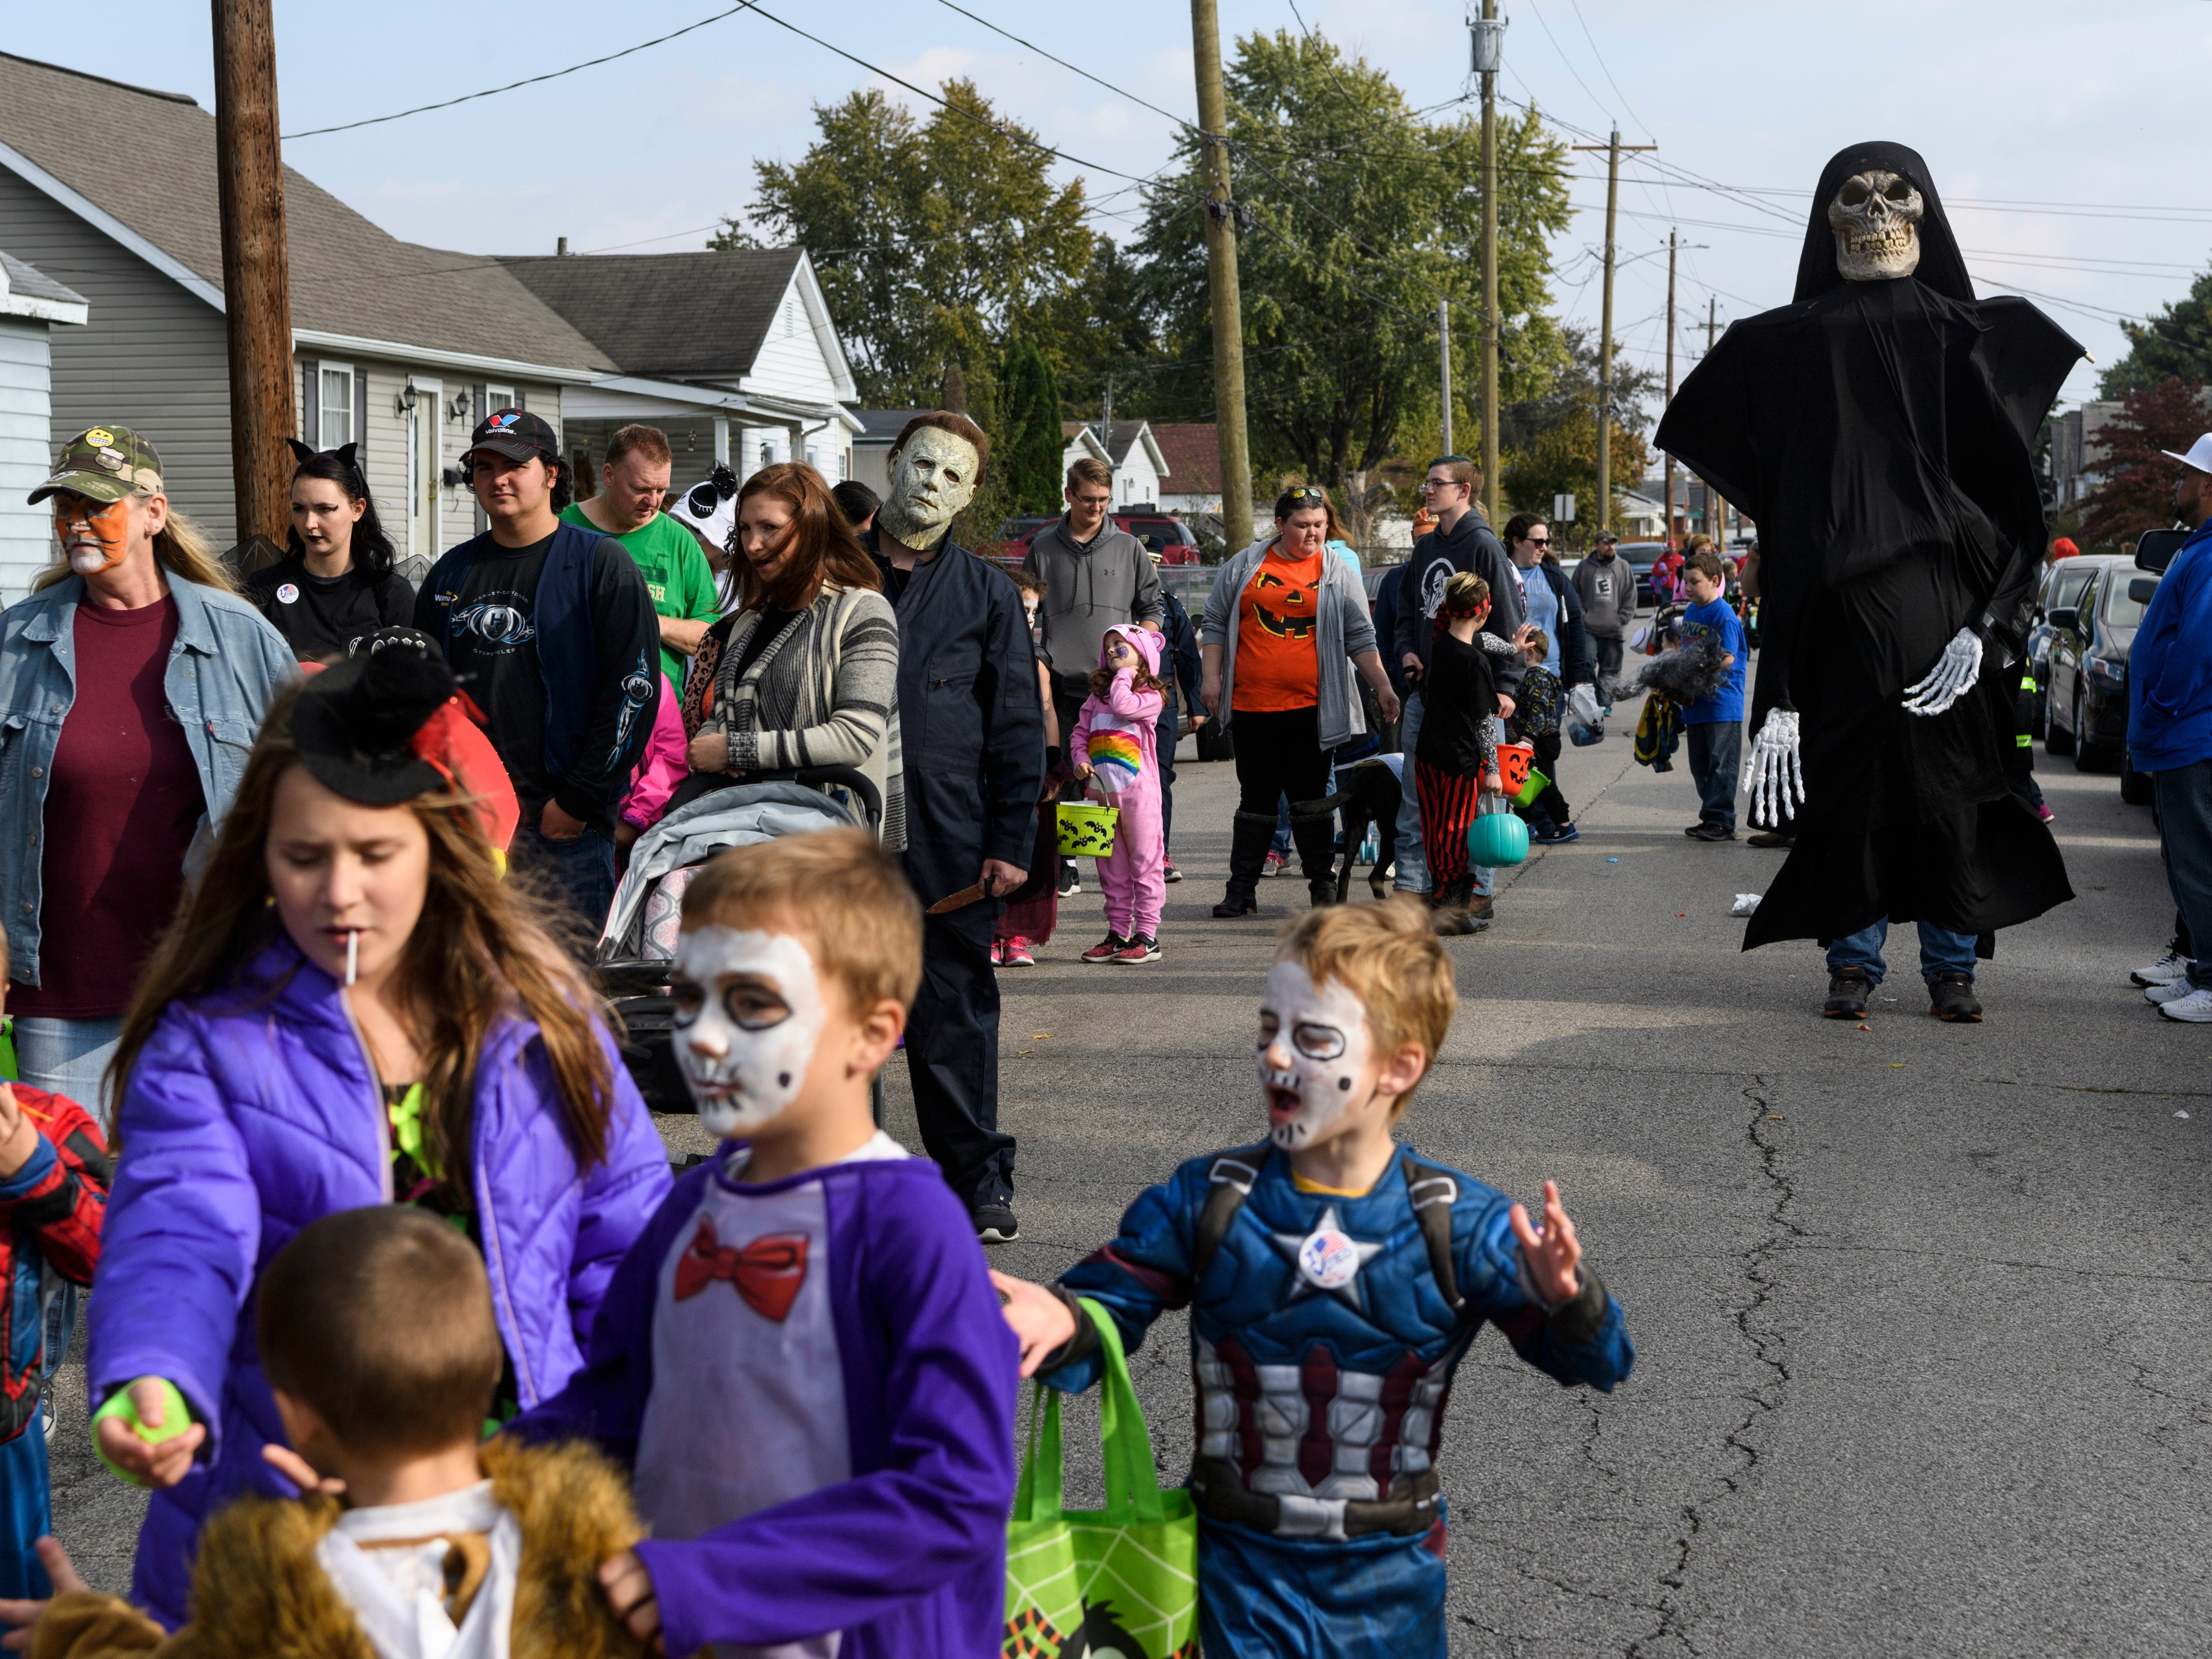 Tim Barron, top right, walks around in spooky skeleton costume during the Halloween Trunk or Treat Extravaganza held along Powell Street in Henderson, Ky., Saturday, Oct. 27, 2018.